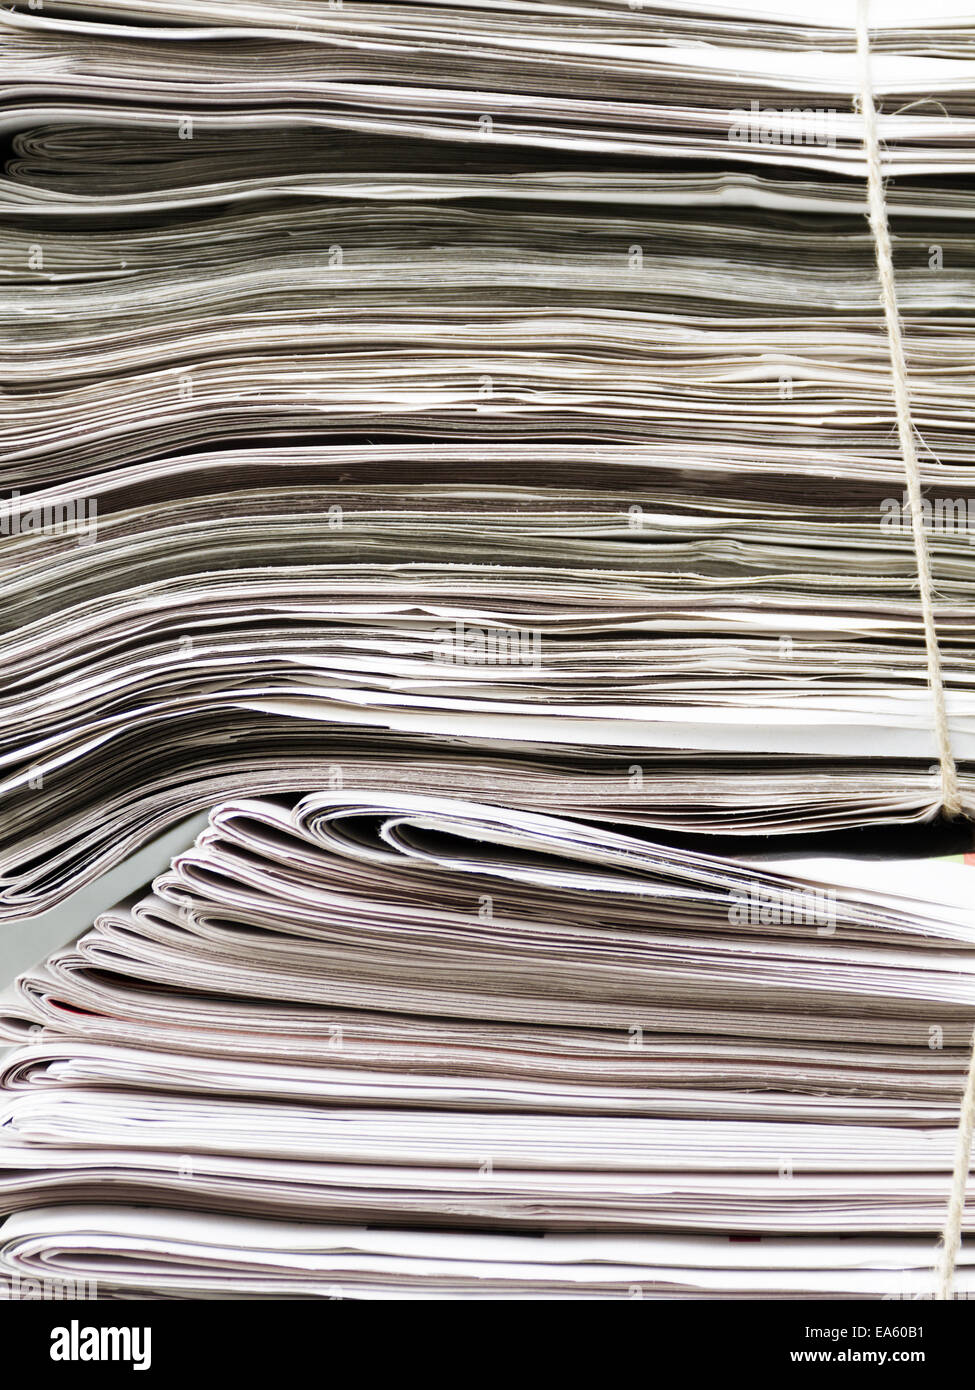 newspapers - Stock Image